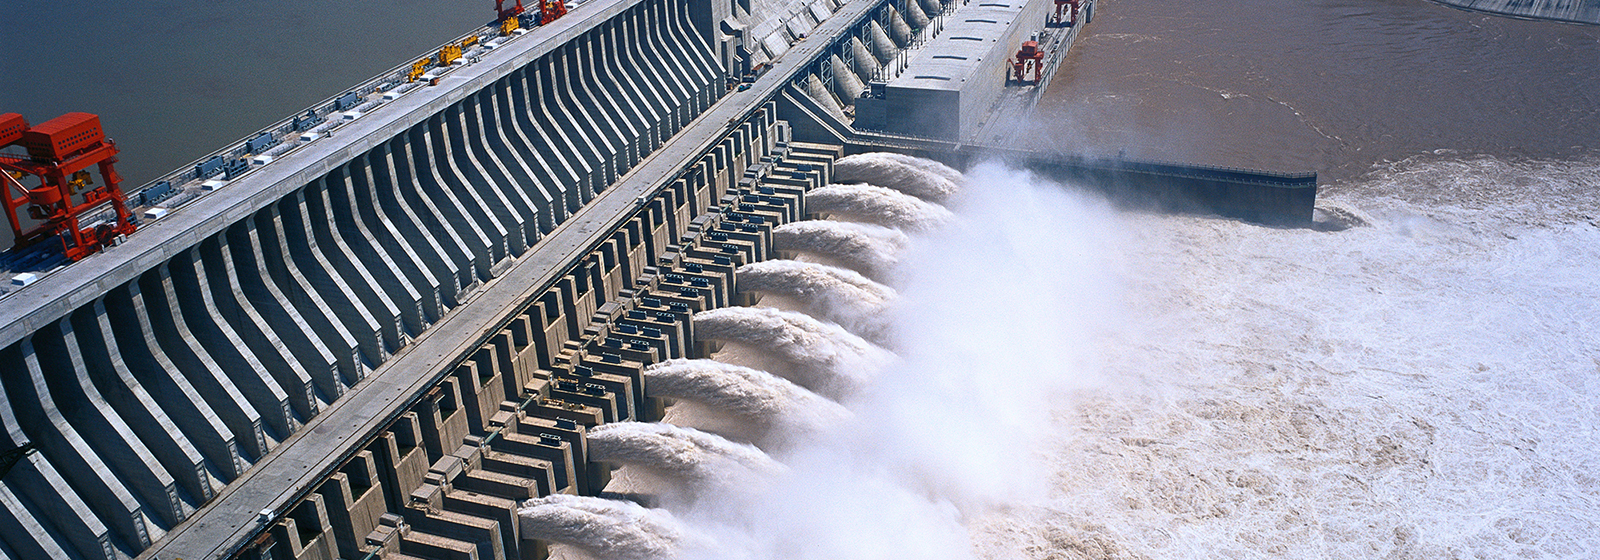 Three gorges dam project china s biggest project since the great wall - Three Gorges Dam Project China S Biggest Project Since The Great Wall 11